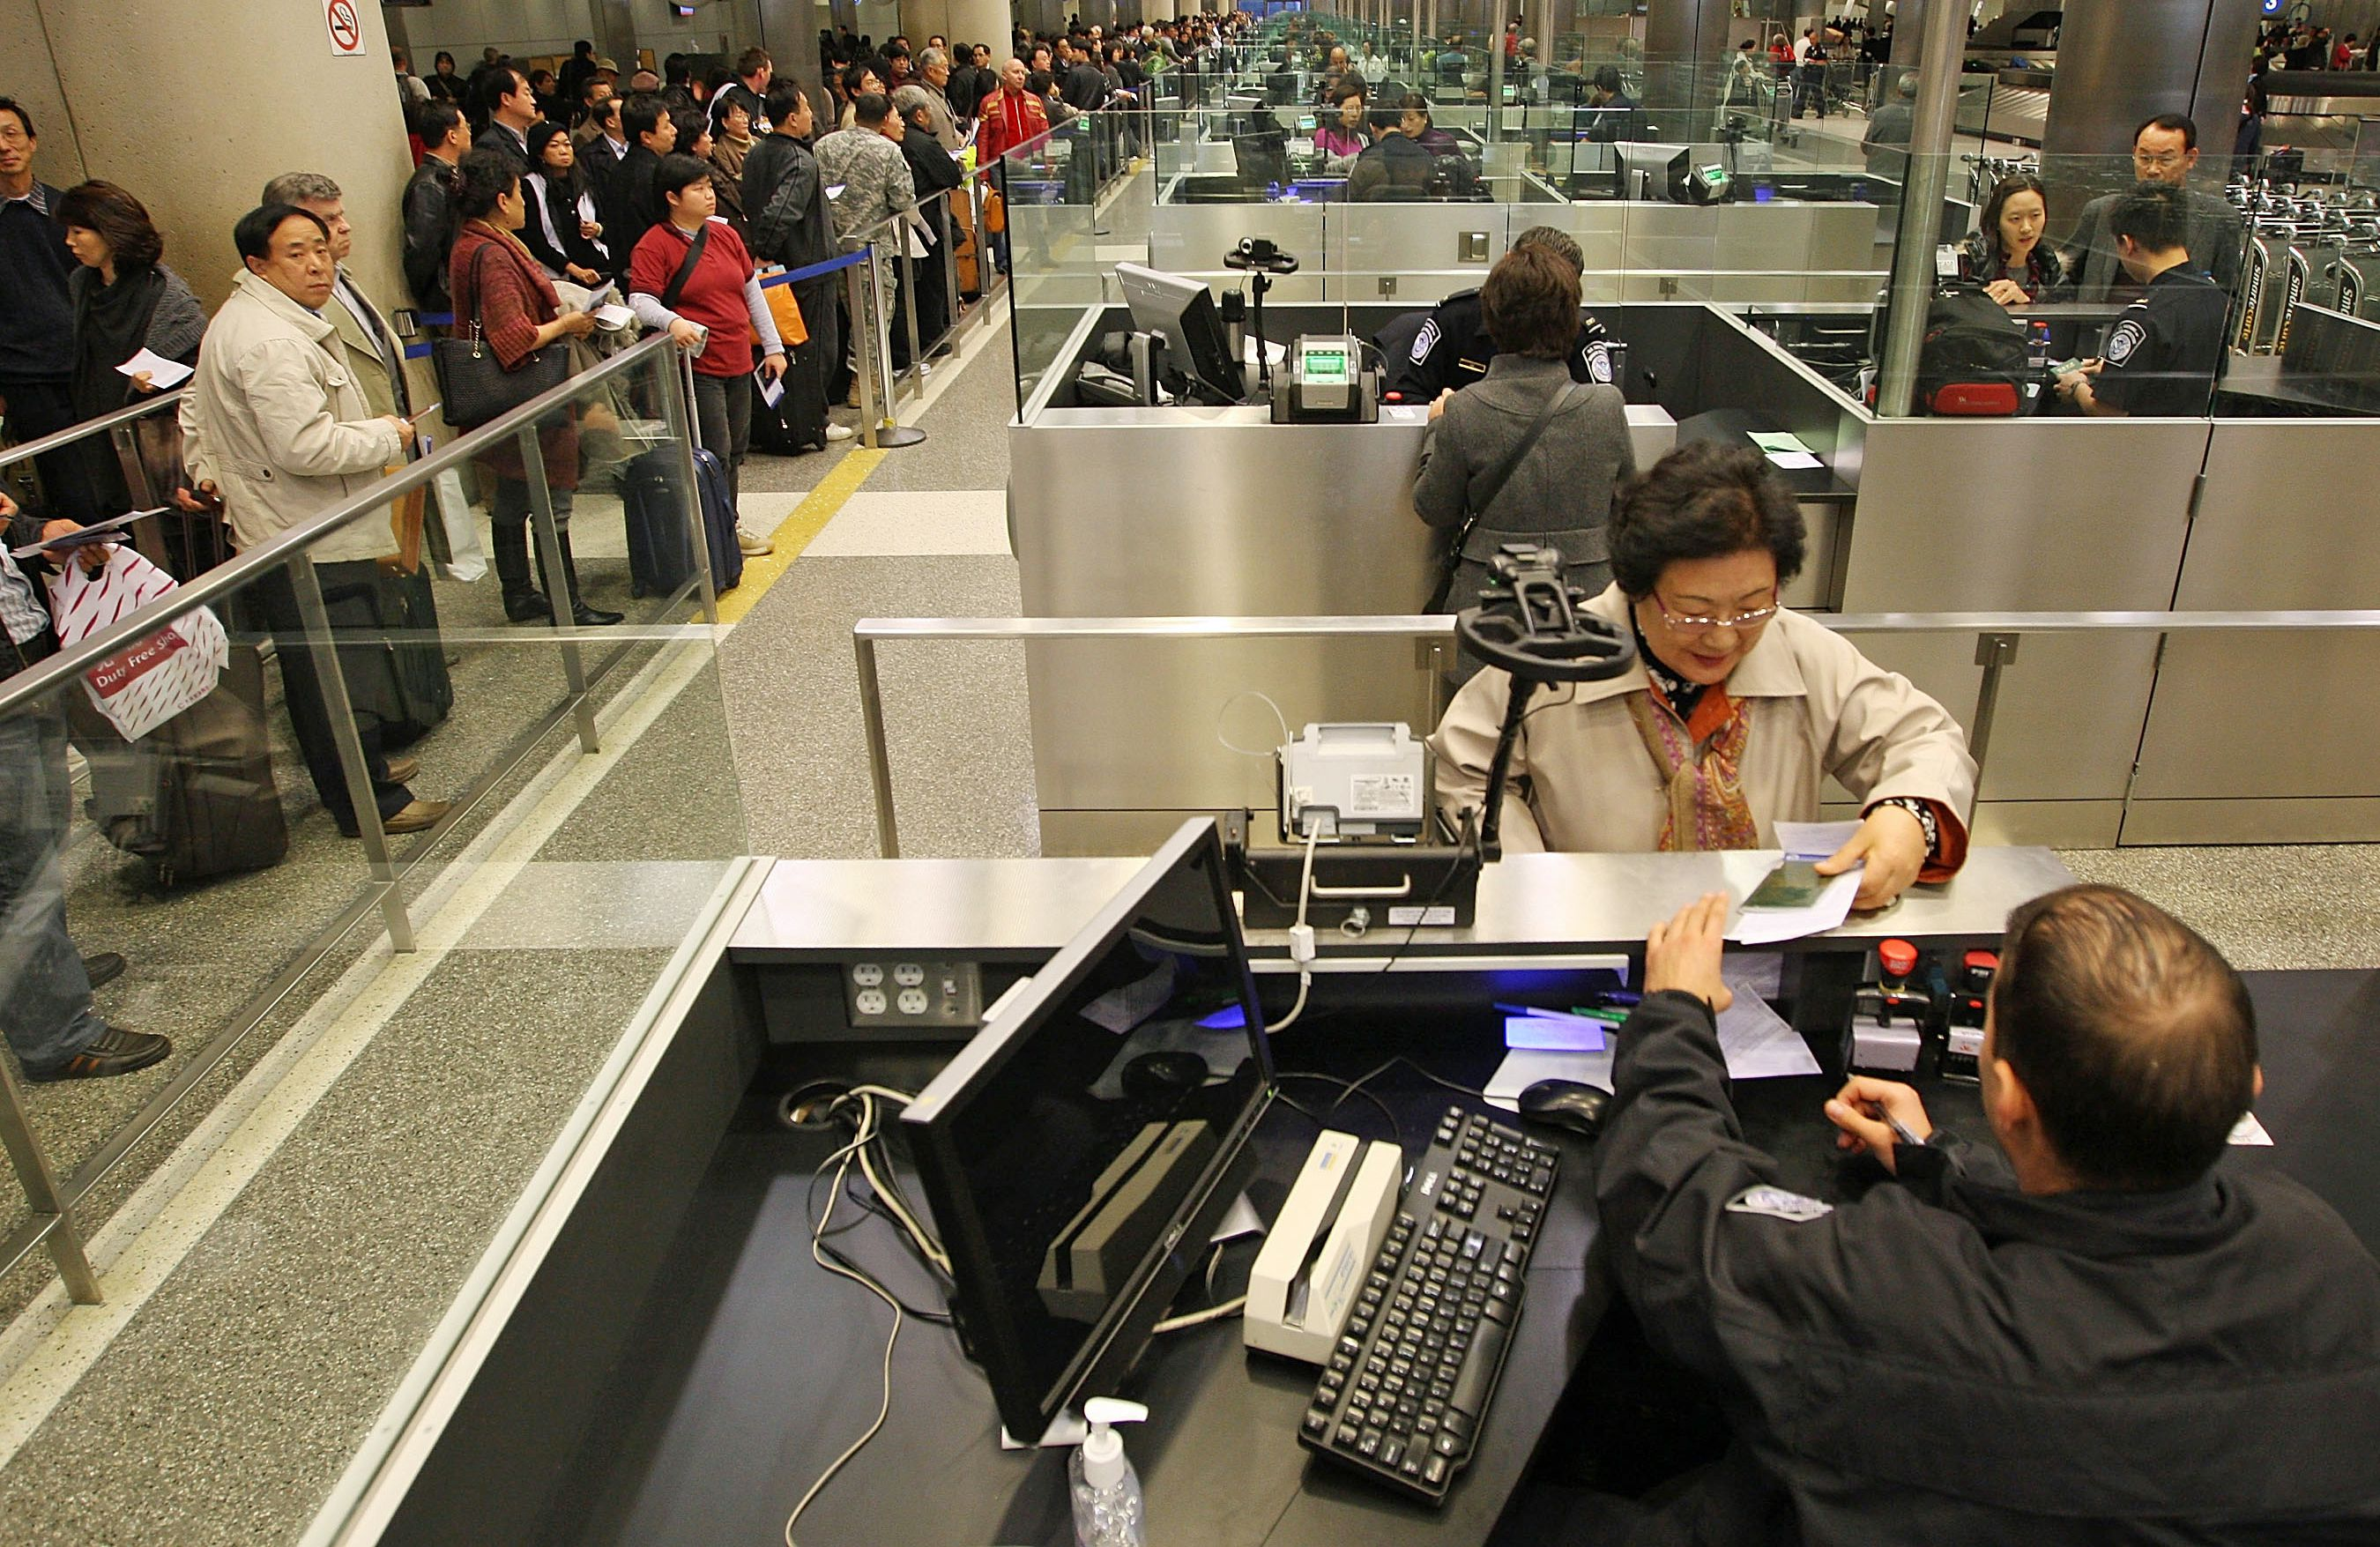 Bypass Long U S Customs Lines With A Global Entry Card